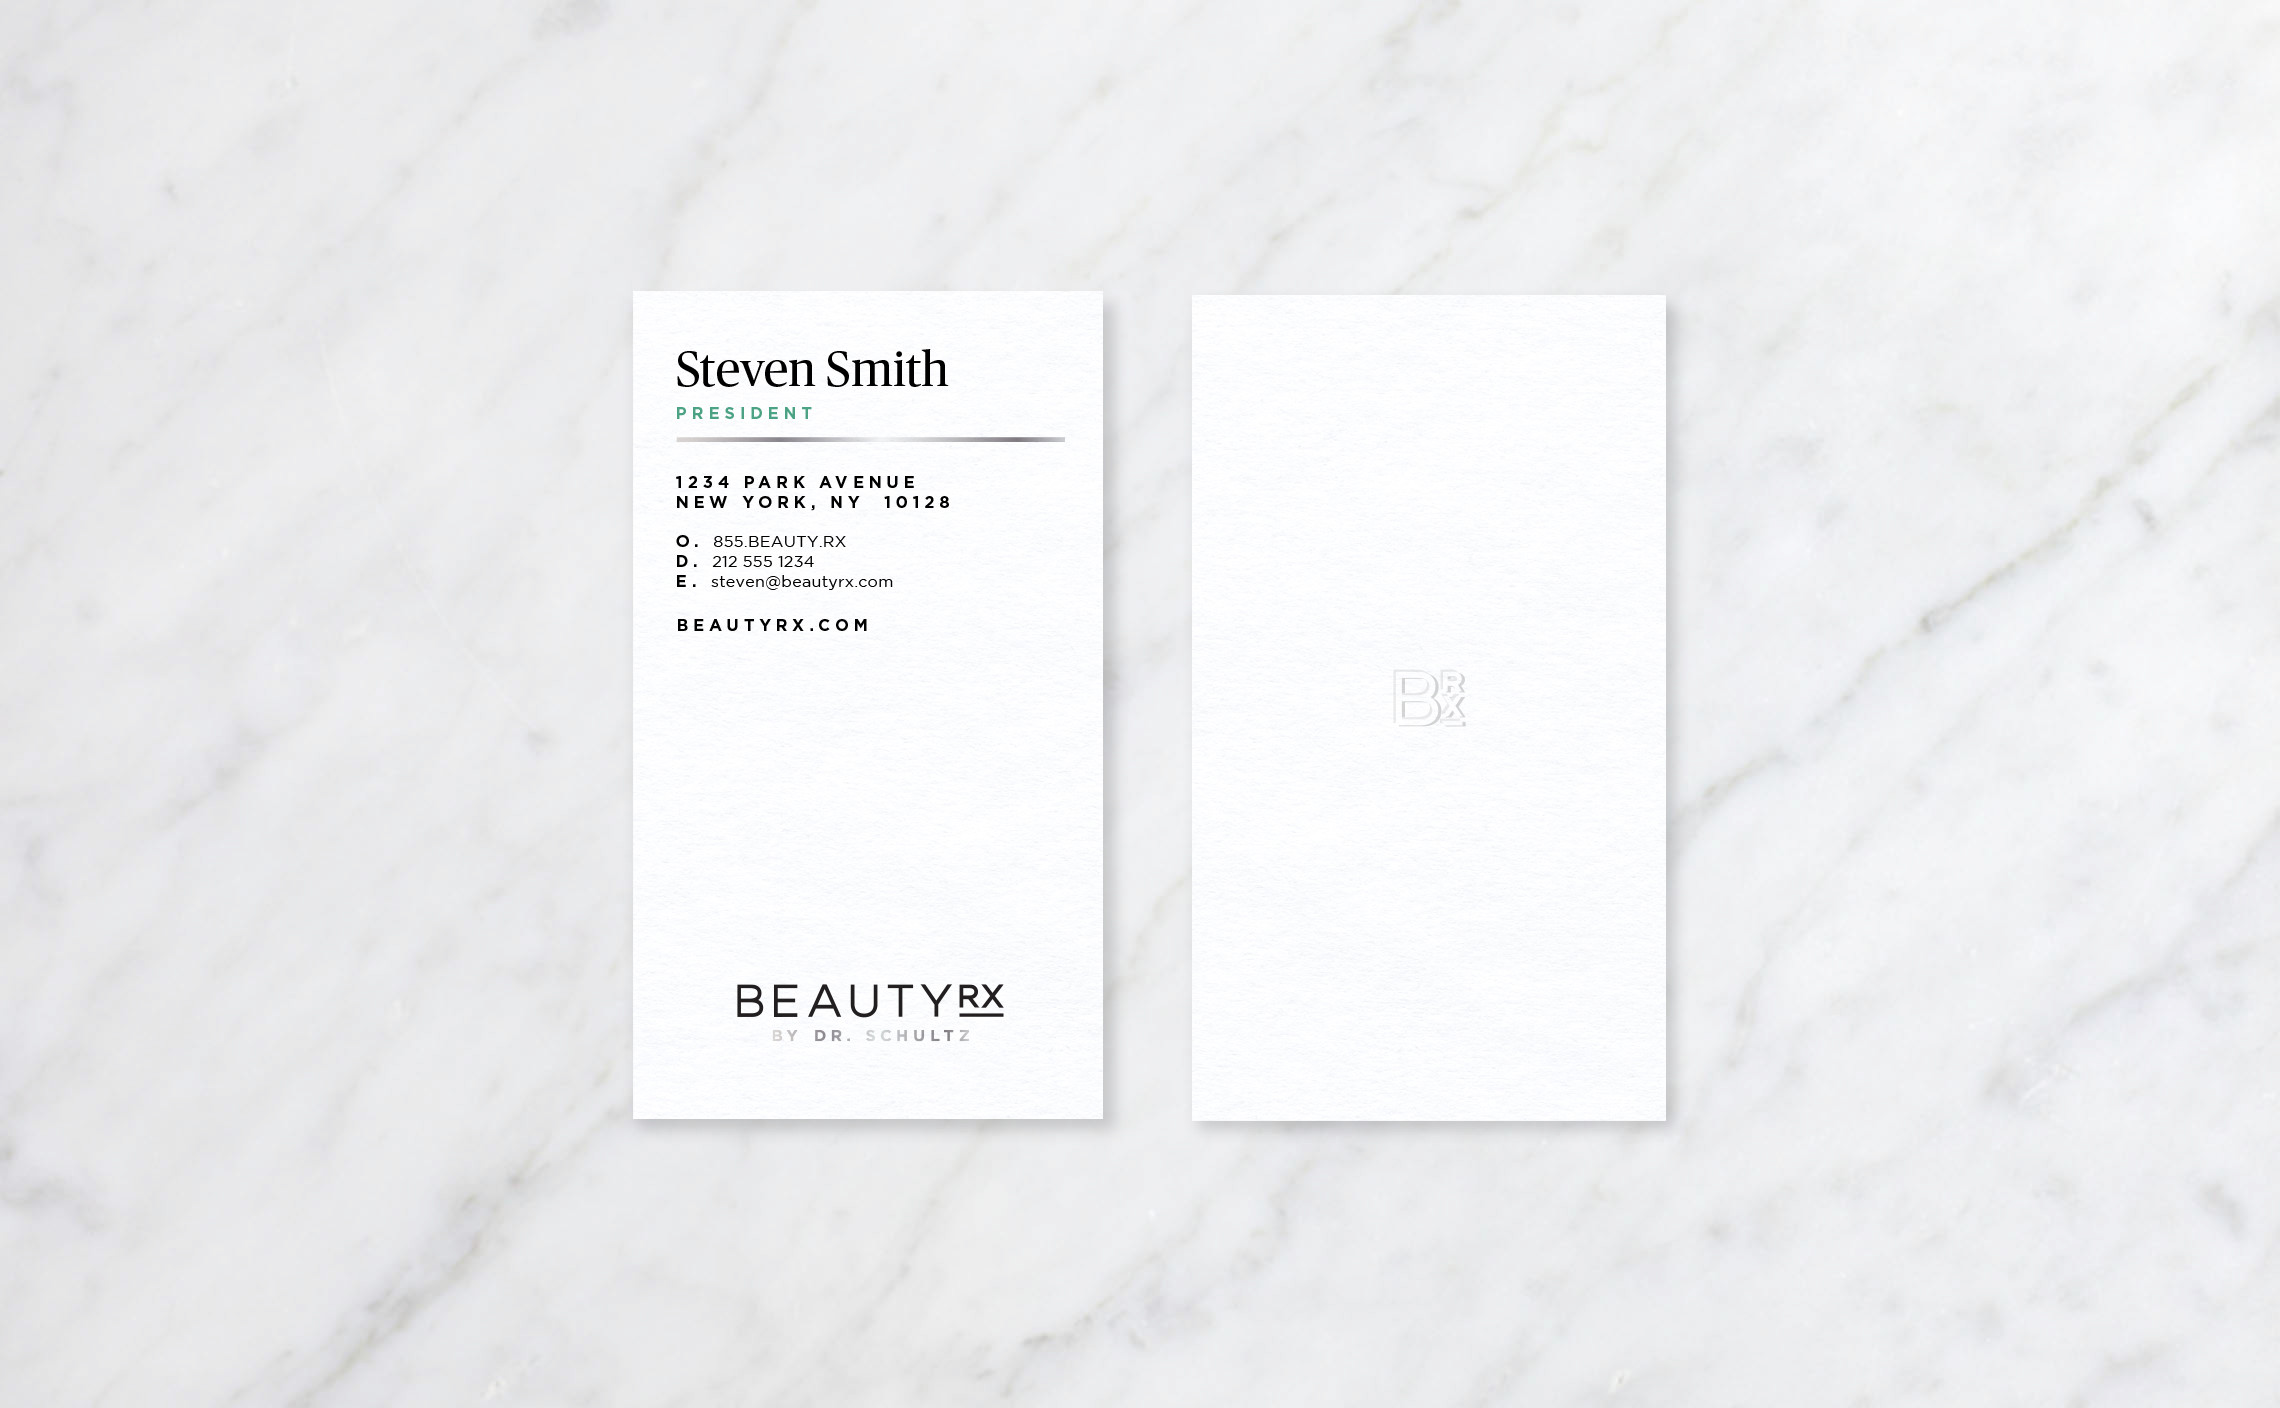 brx-businesscards